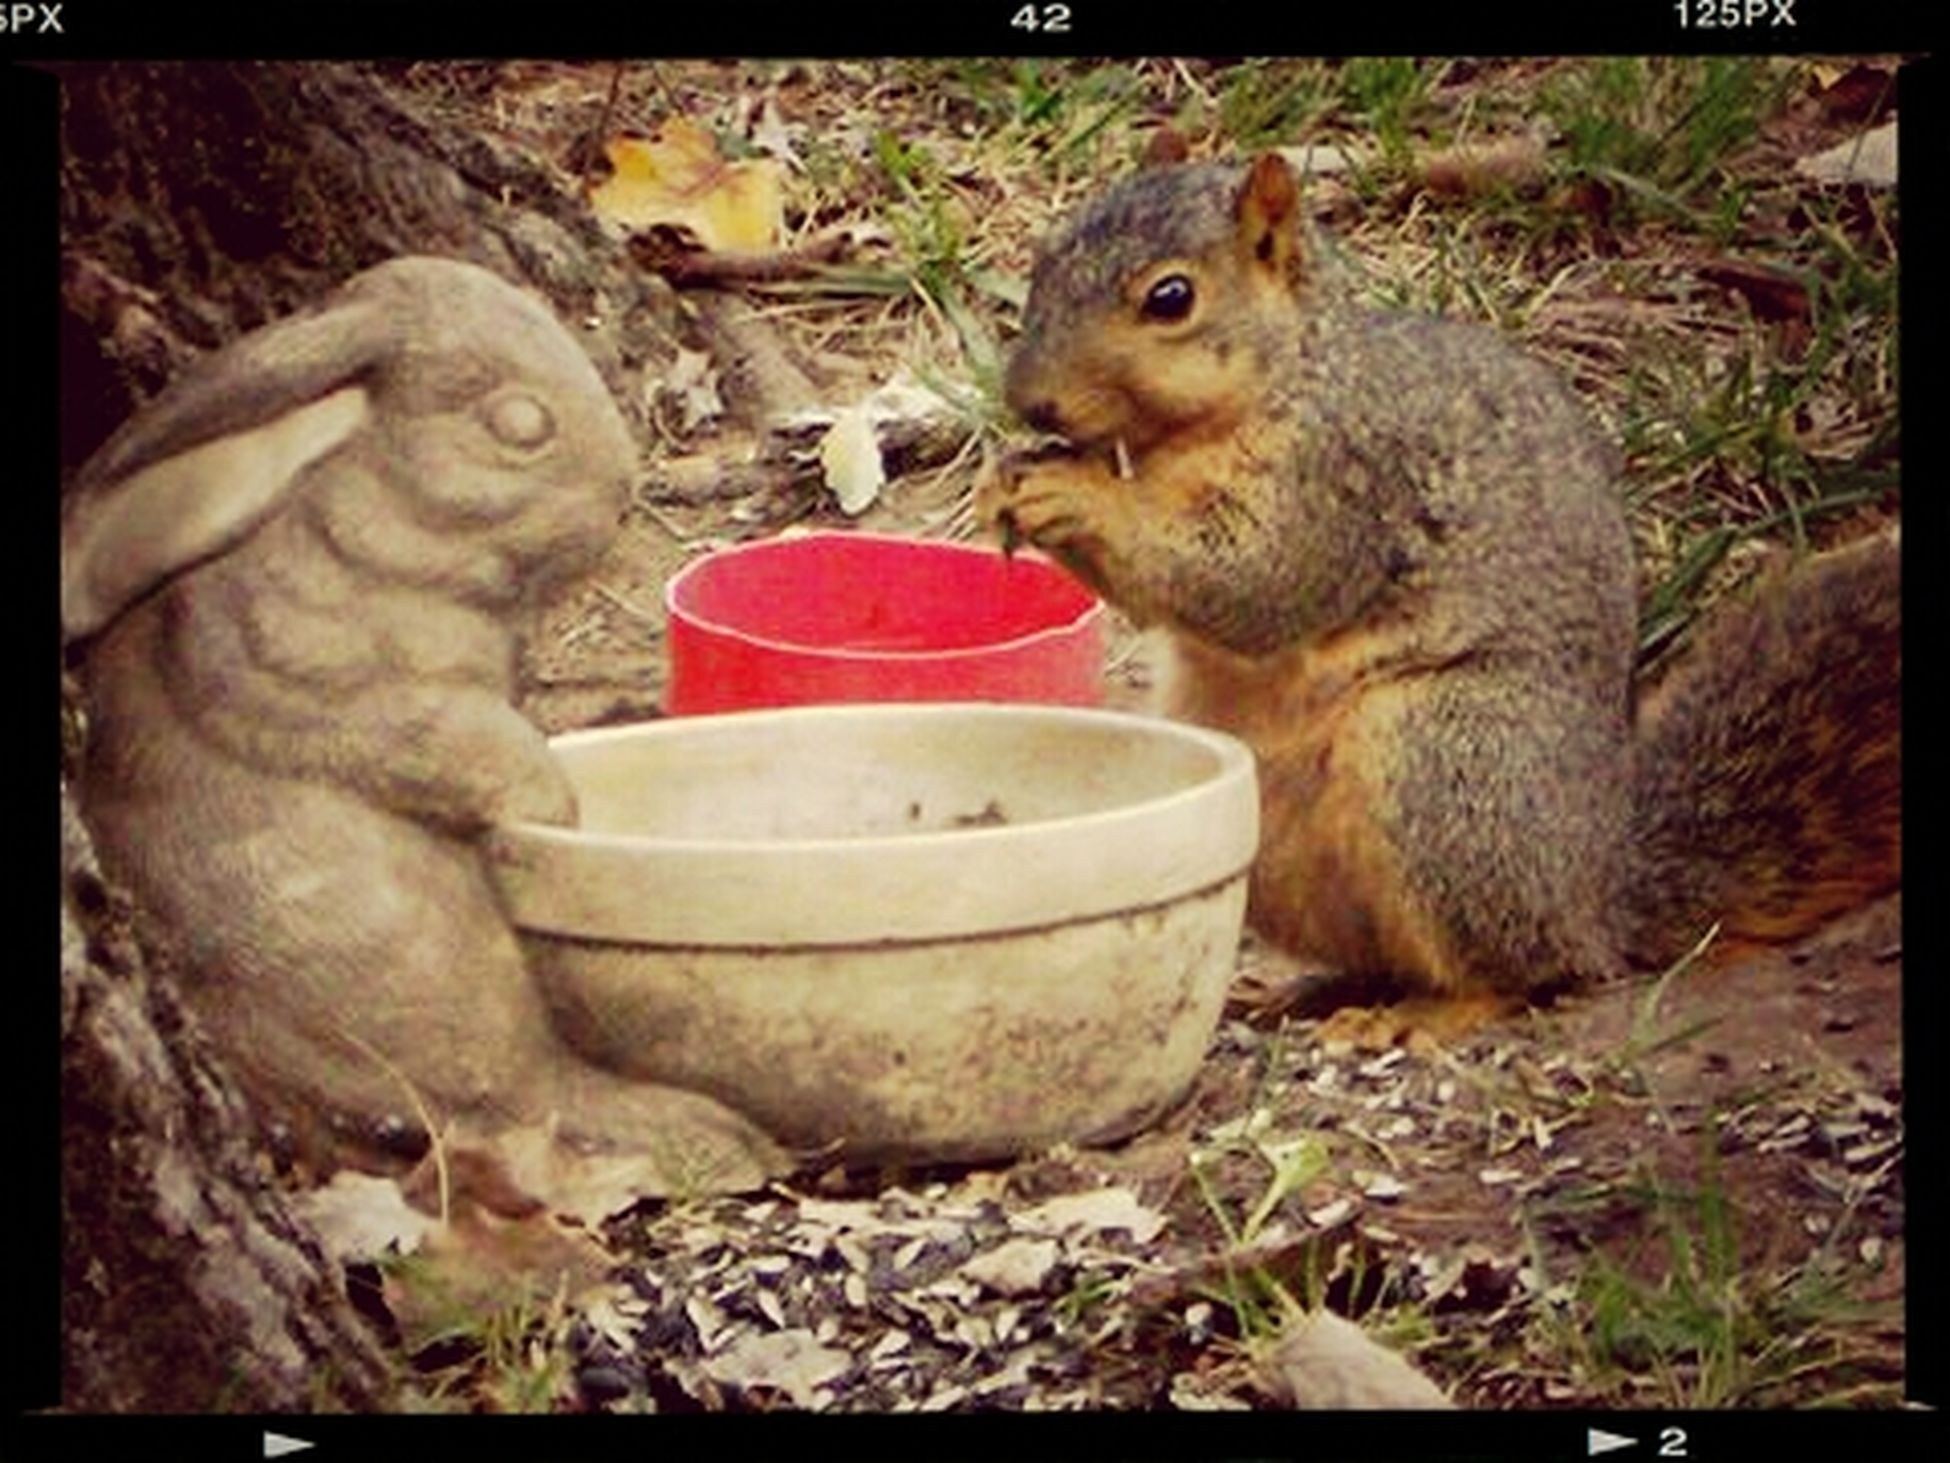 squirrel buddy... revisited